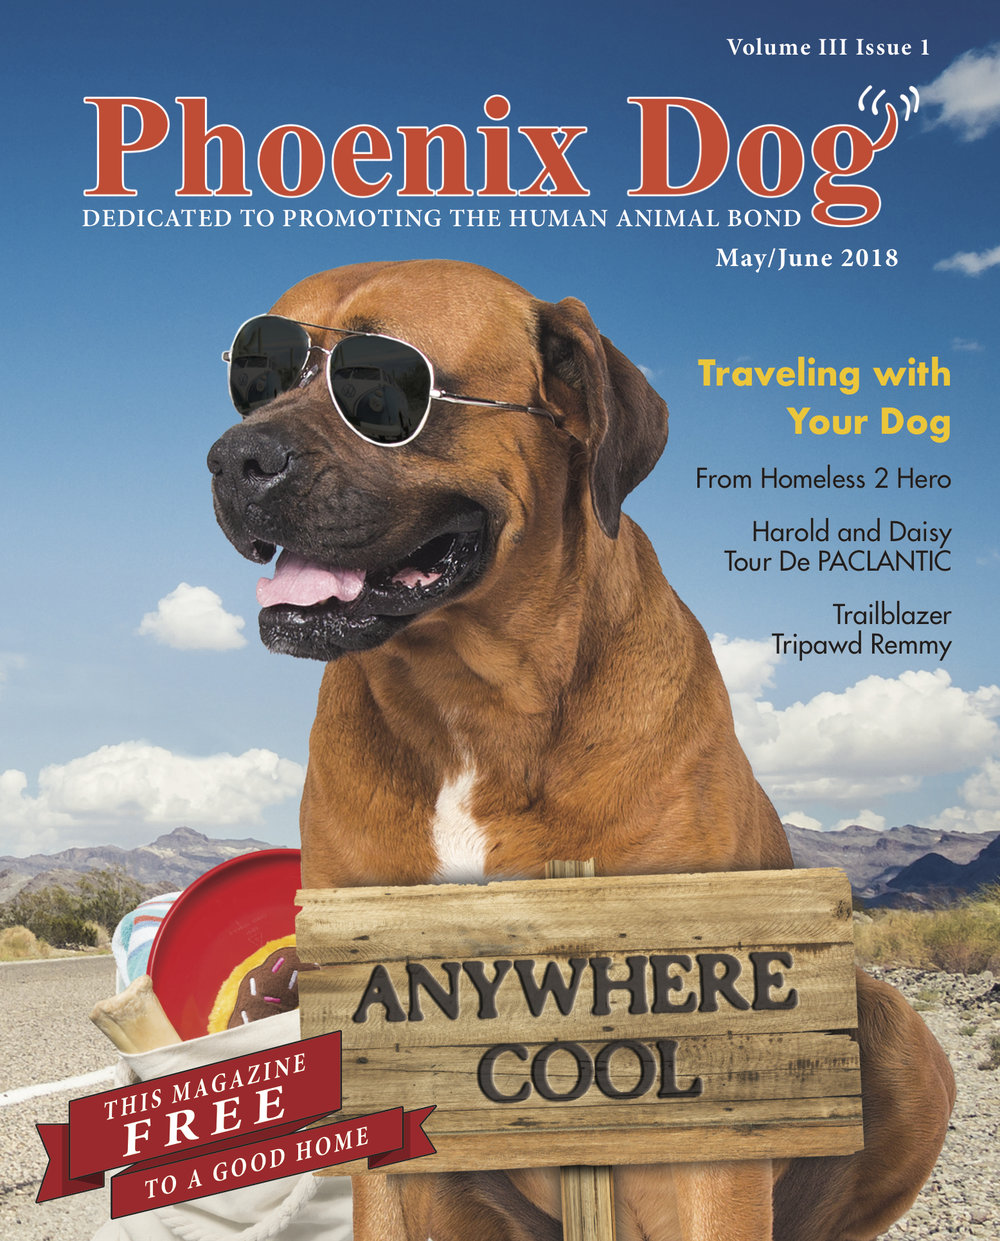 Phoenix Dog Magazine May/June 2018_Cover.jpg